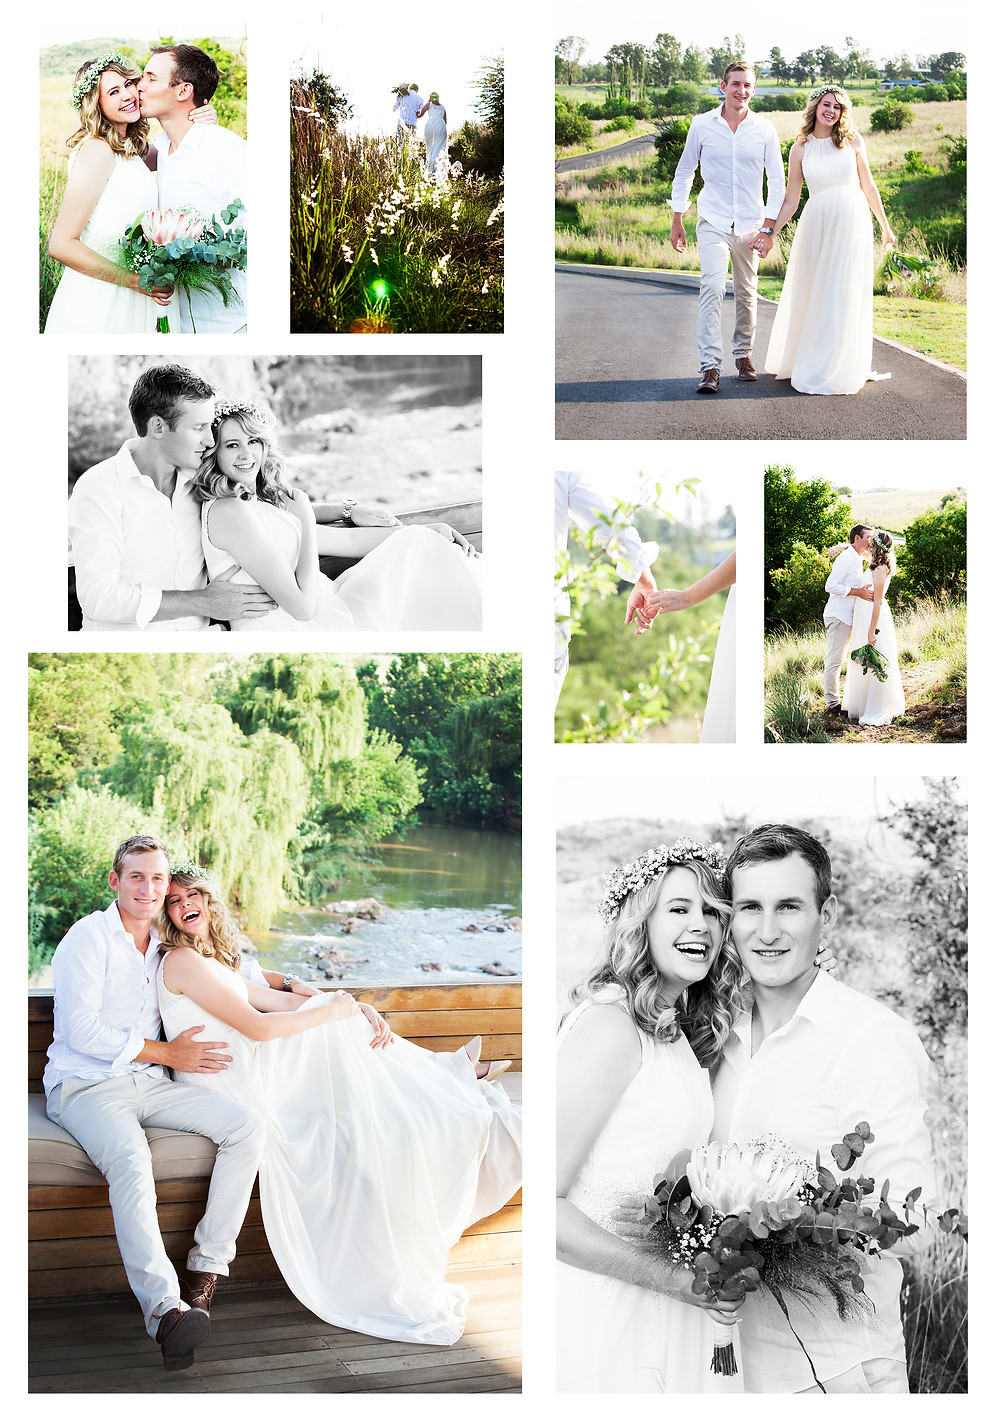 Kelly and Corne Couple's Portraits